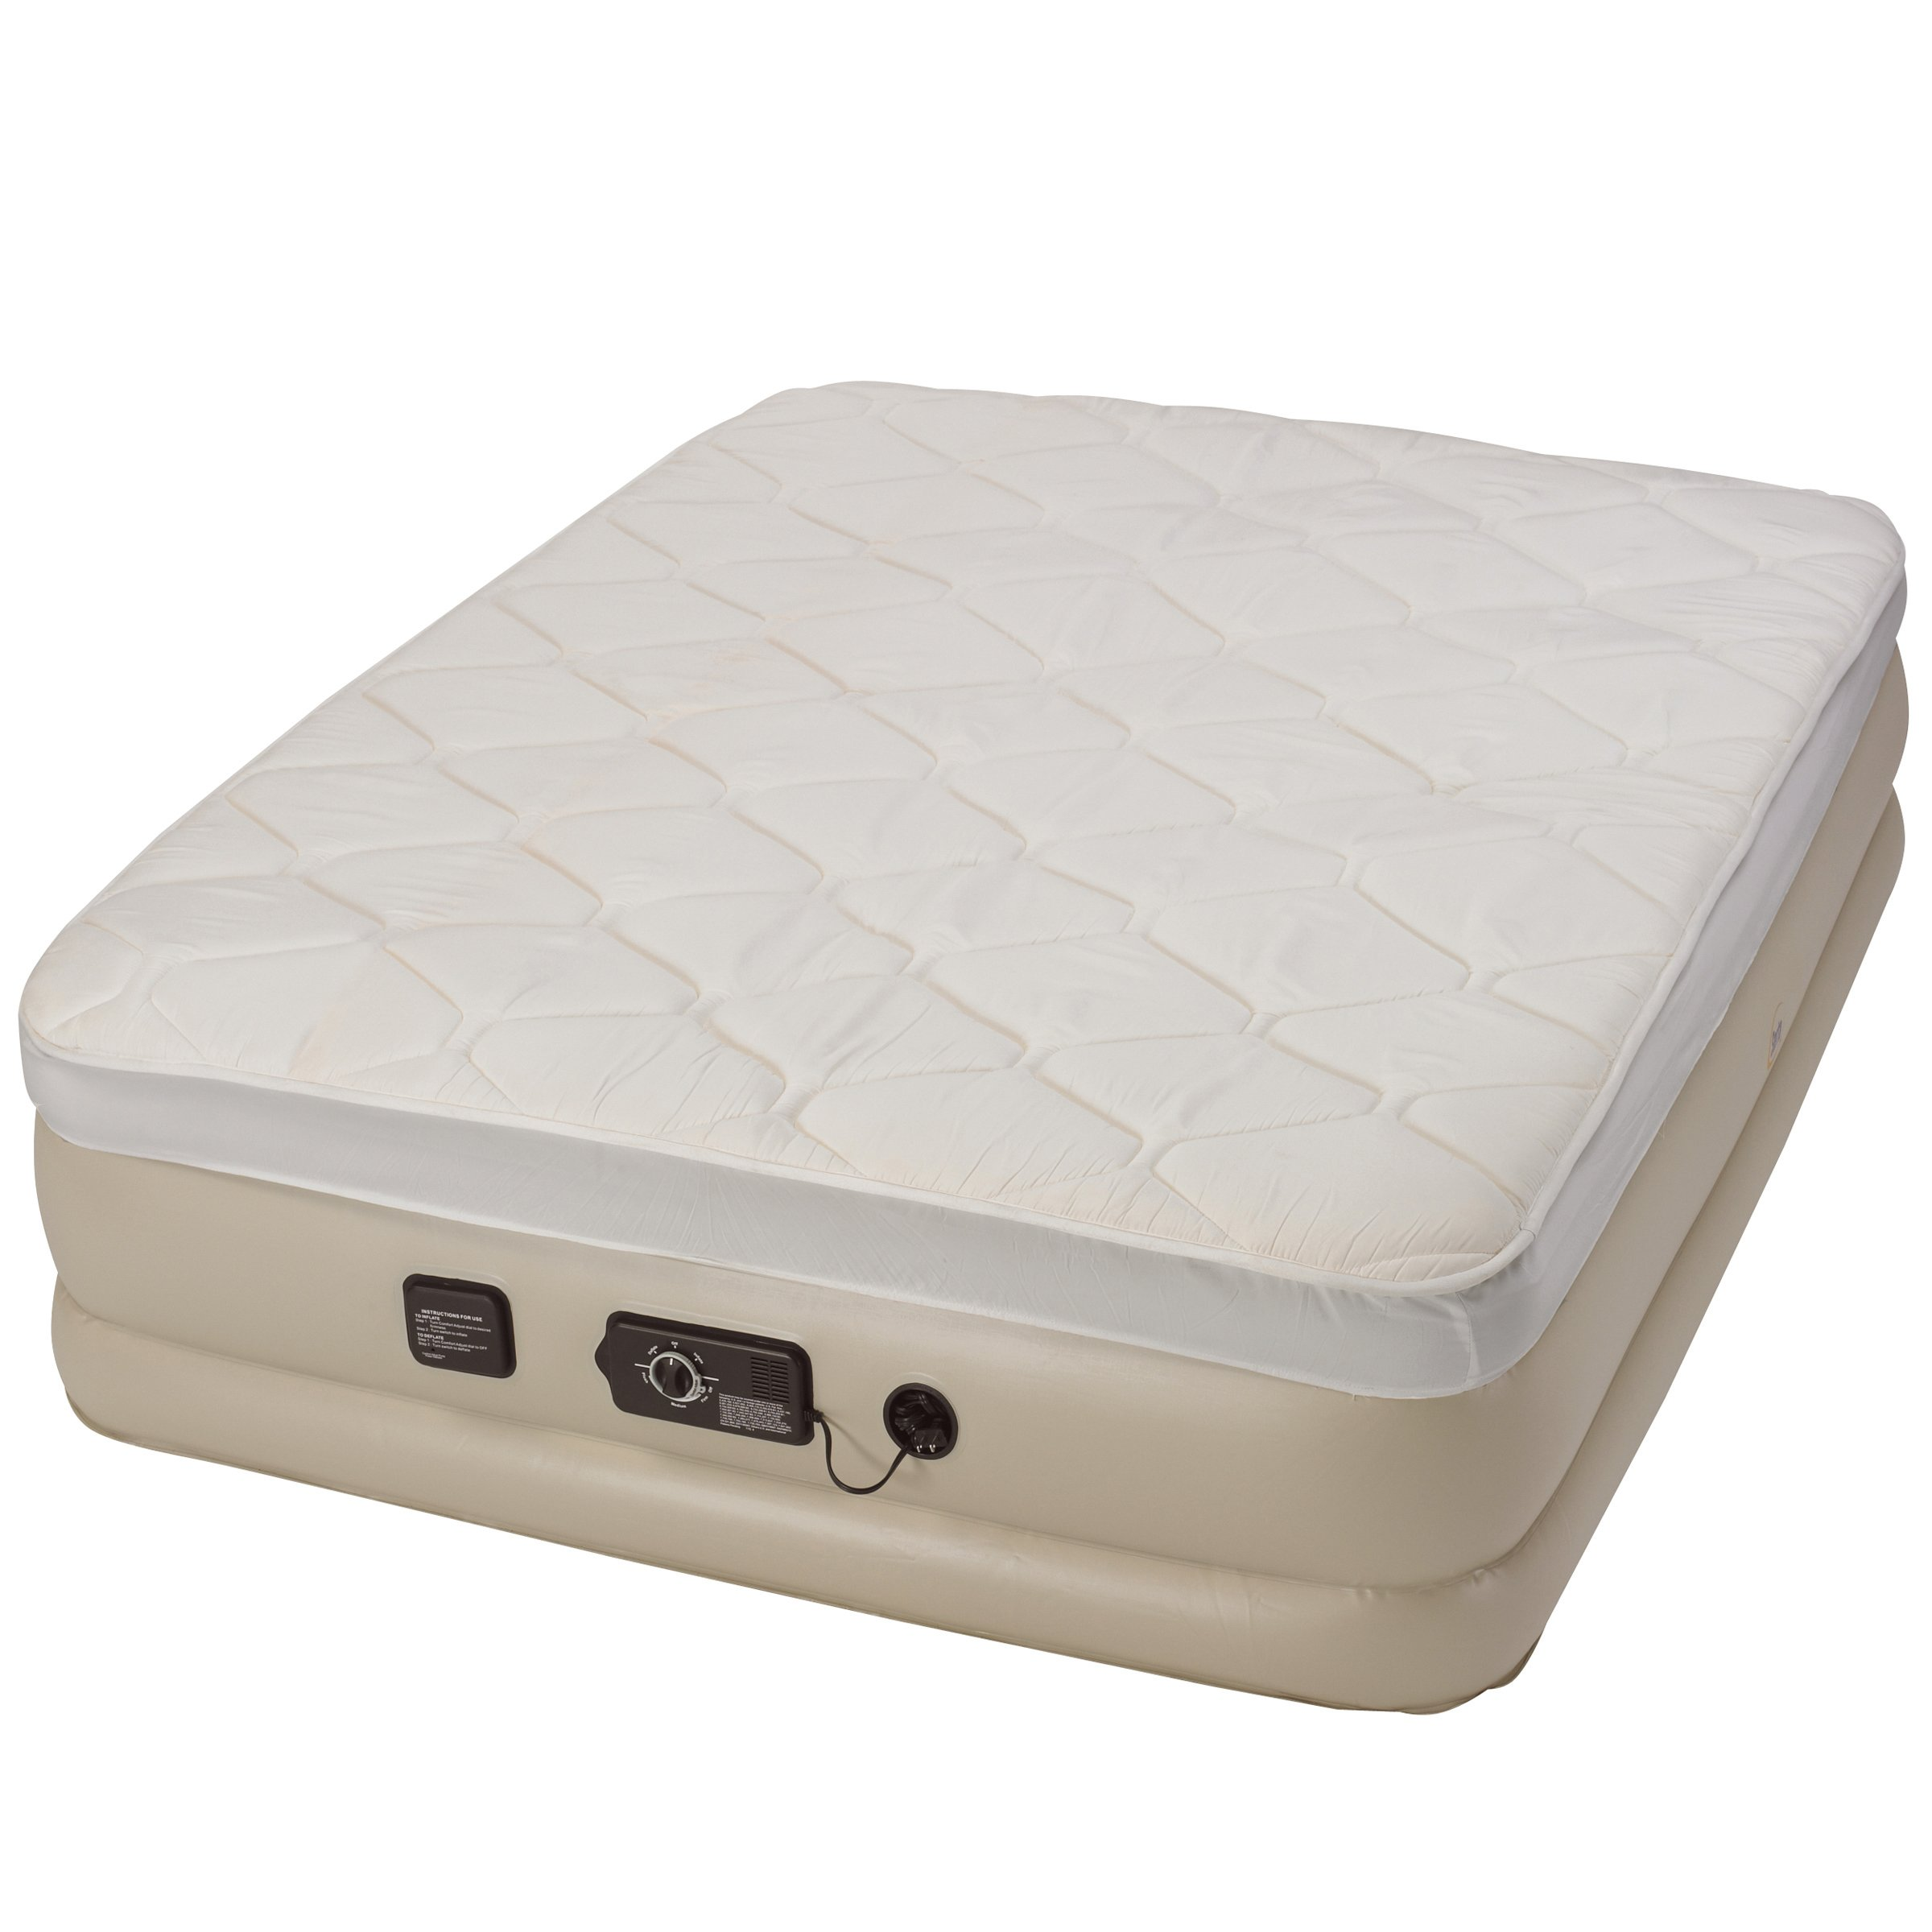 Serta Raised Queen Pillow Top Air Mattress with Never Flat Pump